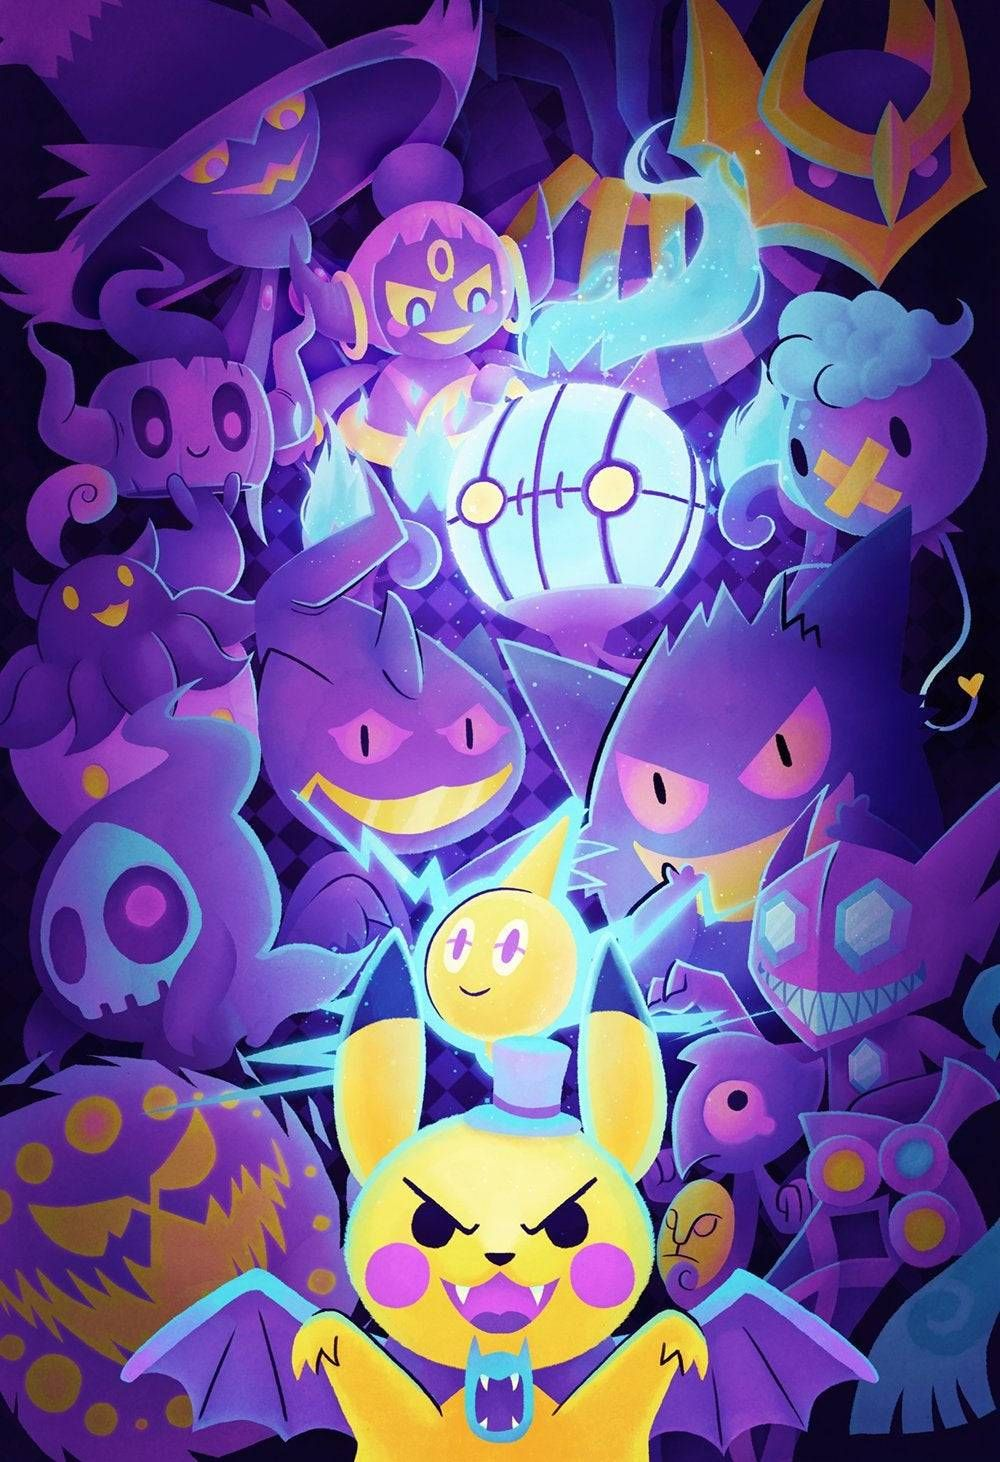 Ghost Pokemon Poster made by StarSalts -